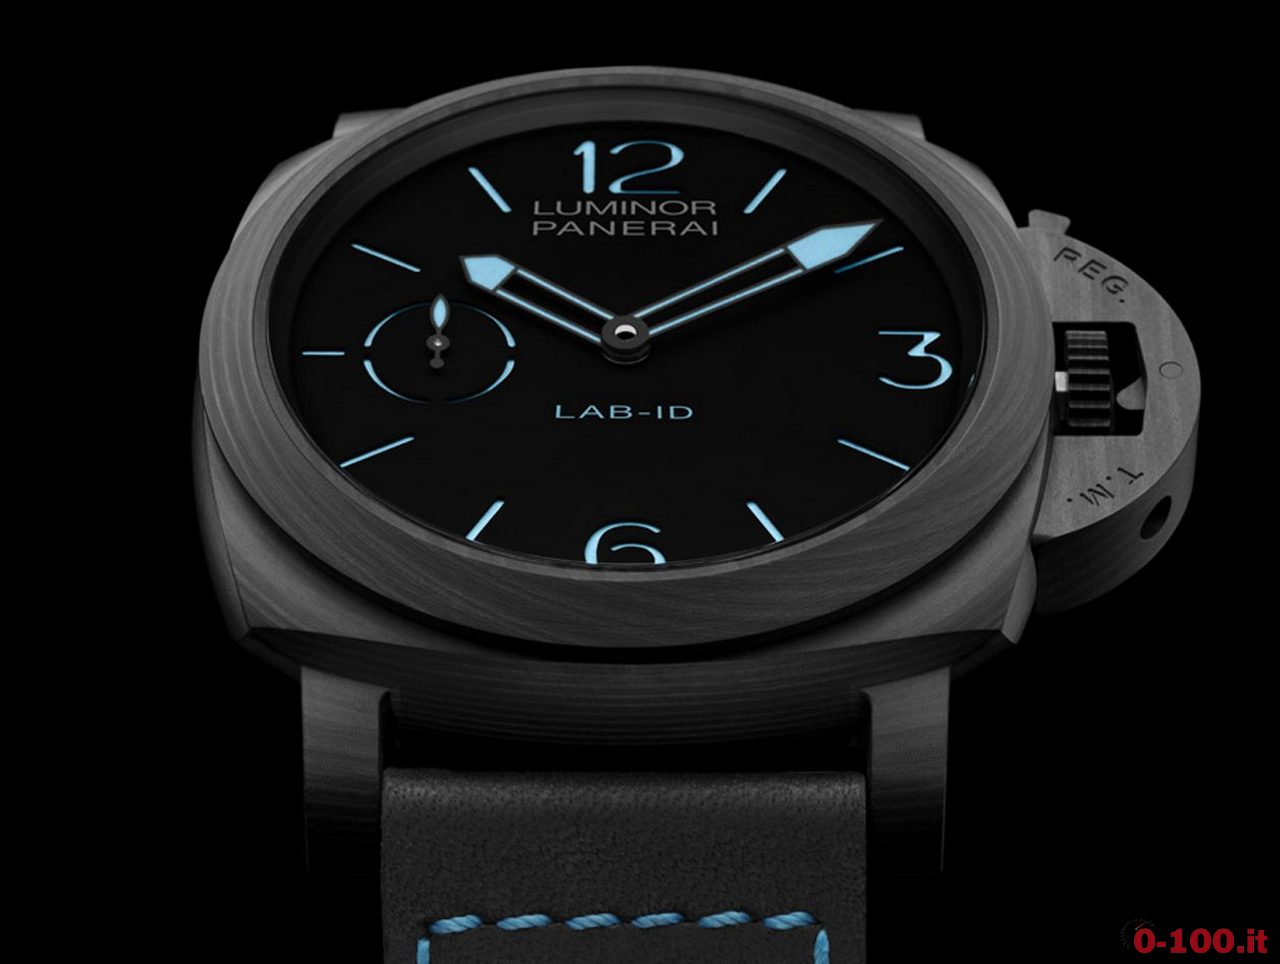 sihh-2017-officine-panerai-panerai-lab-id-luminor-1950-carbotech-3-days-49mm-pam00700-prezzo-price_0_100